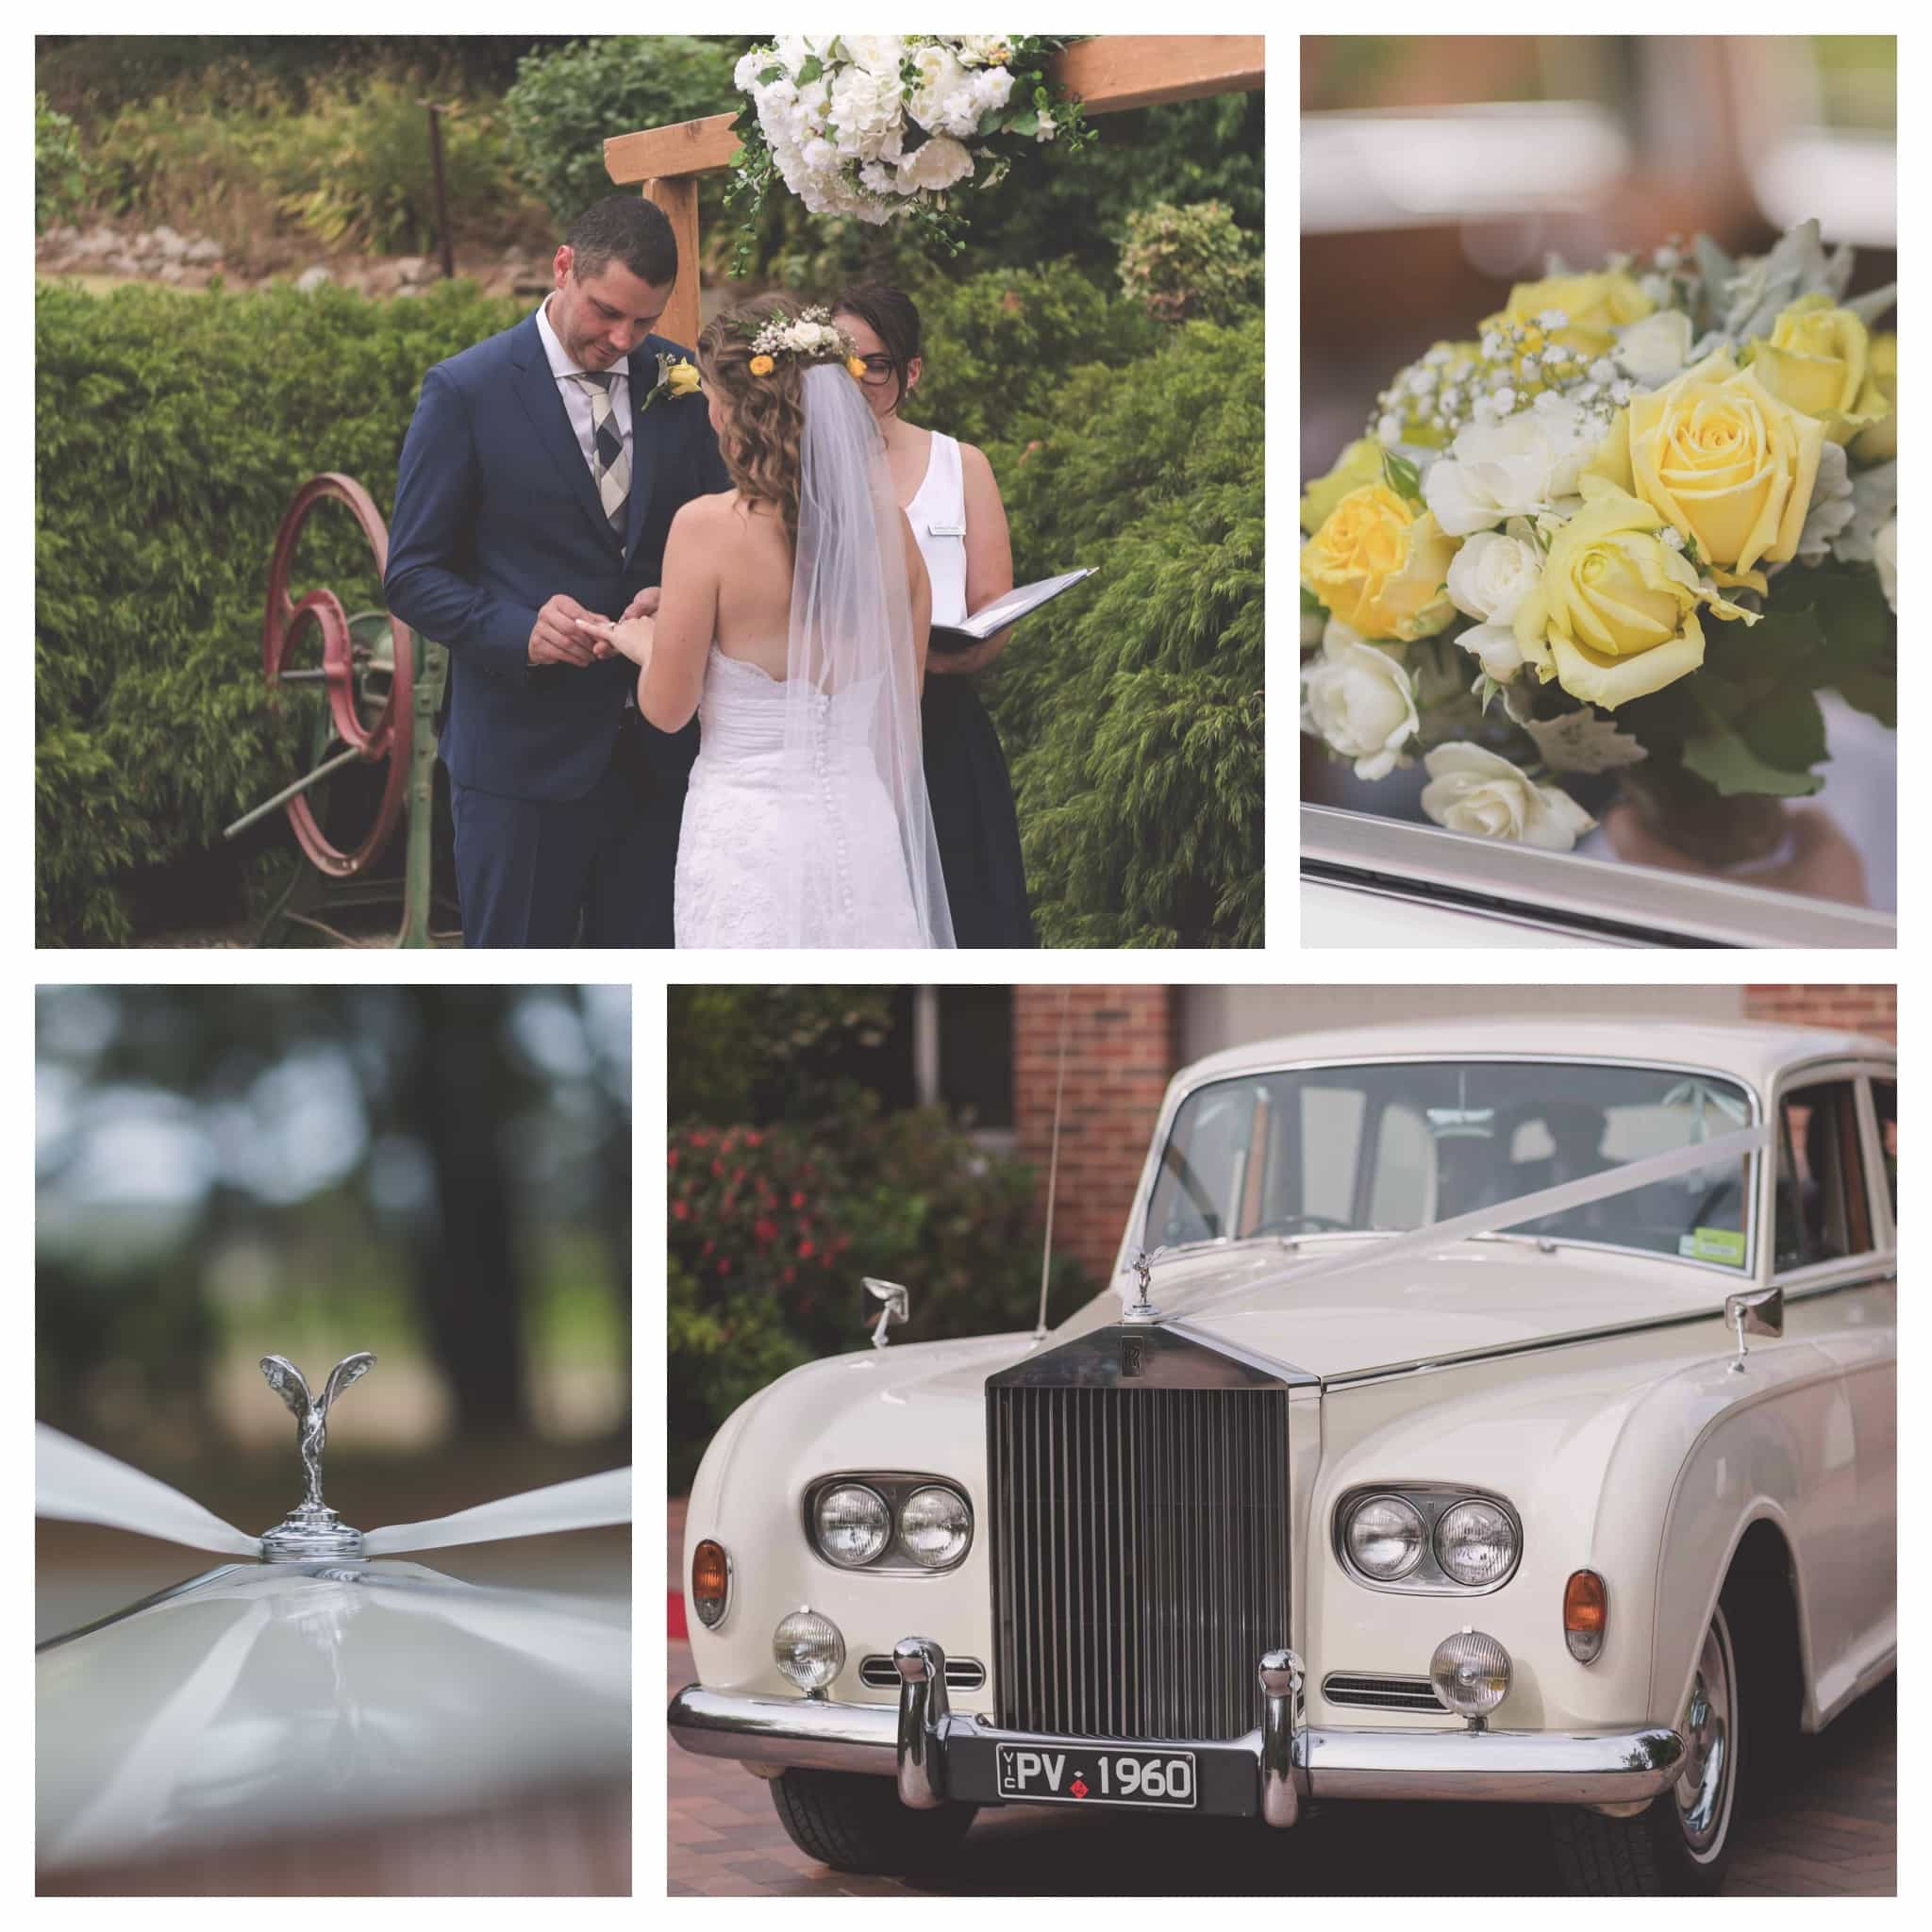 A selection of images from a Weddin on the Mornington Peninsula